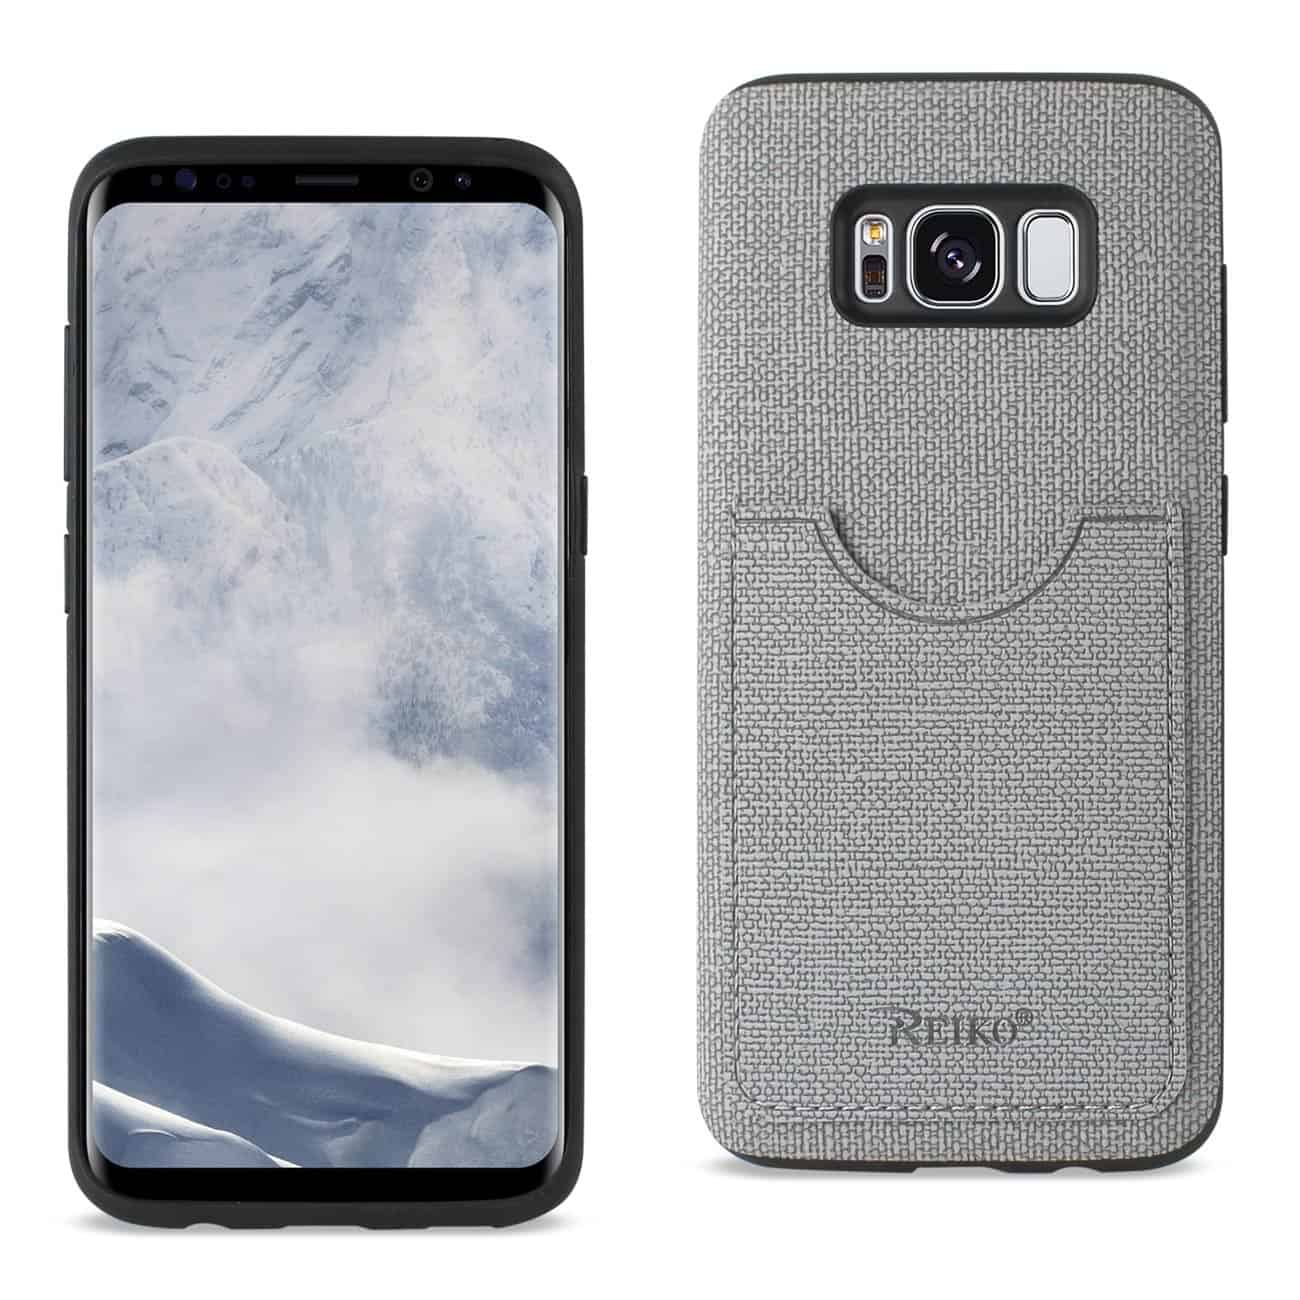 SAMSUNG GALAXY S8 EDGE/ S8 PLUS ANTI-SLIP TEXTURE PROTECTOR COVER WITH CARD SLOT IN GRAY